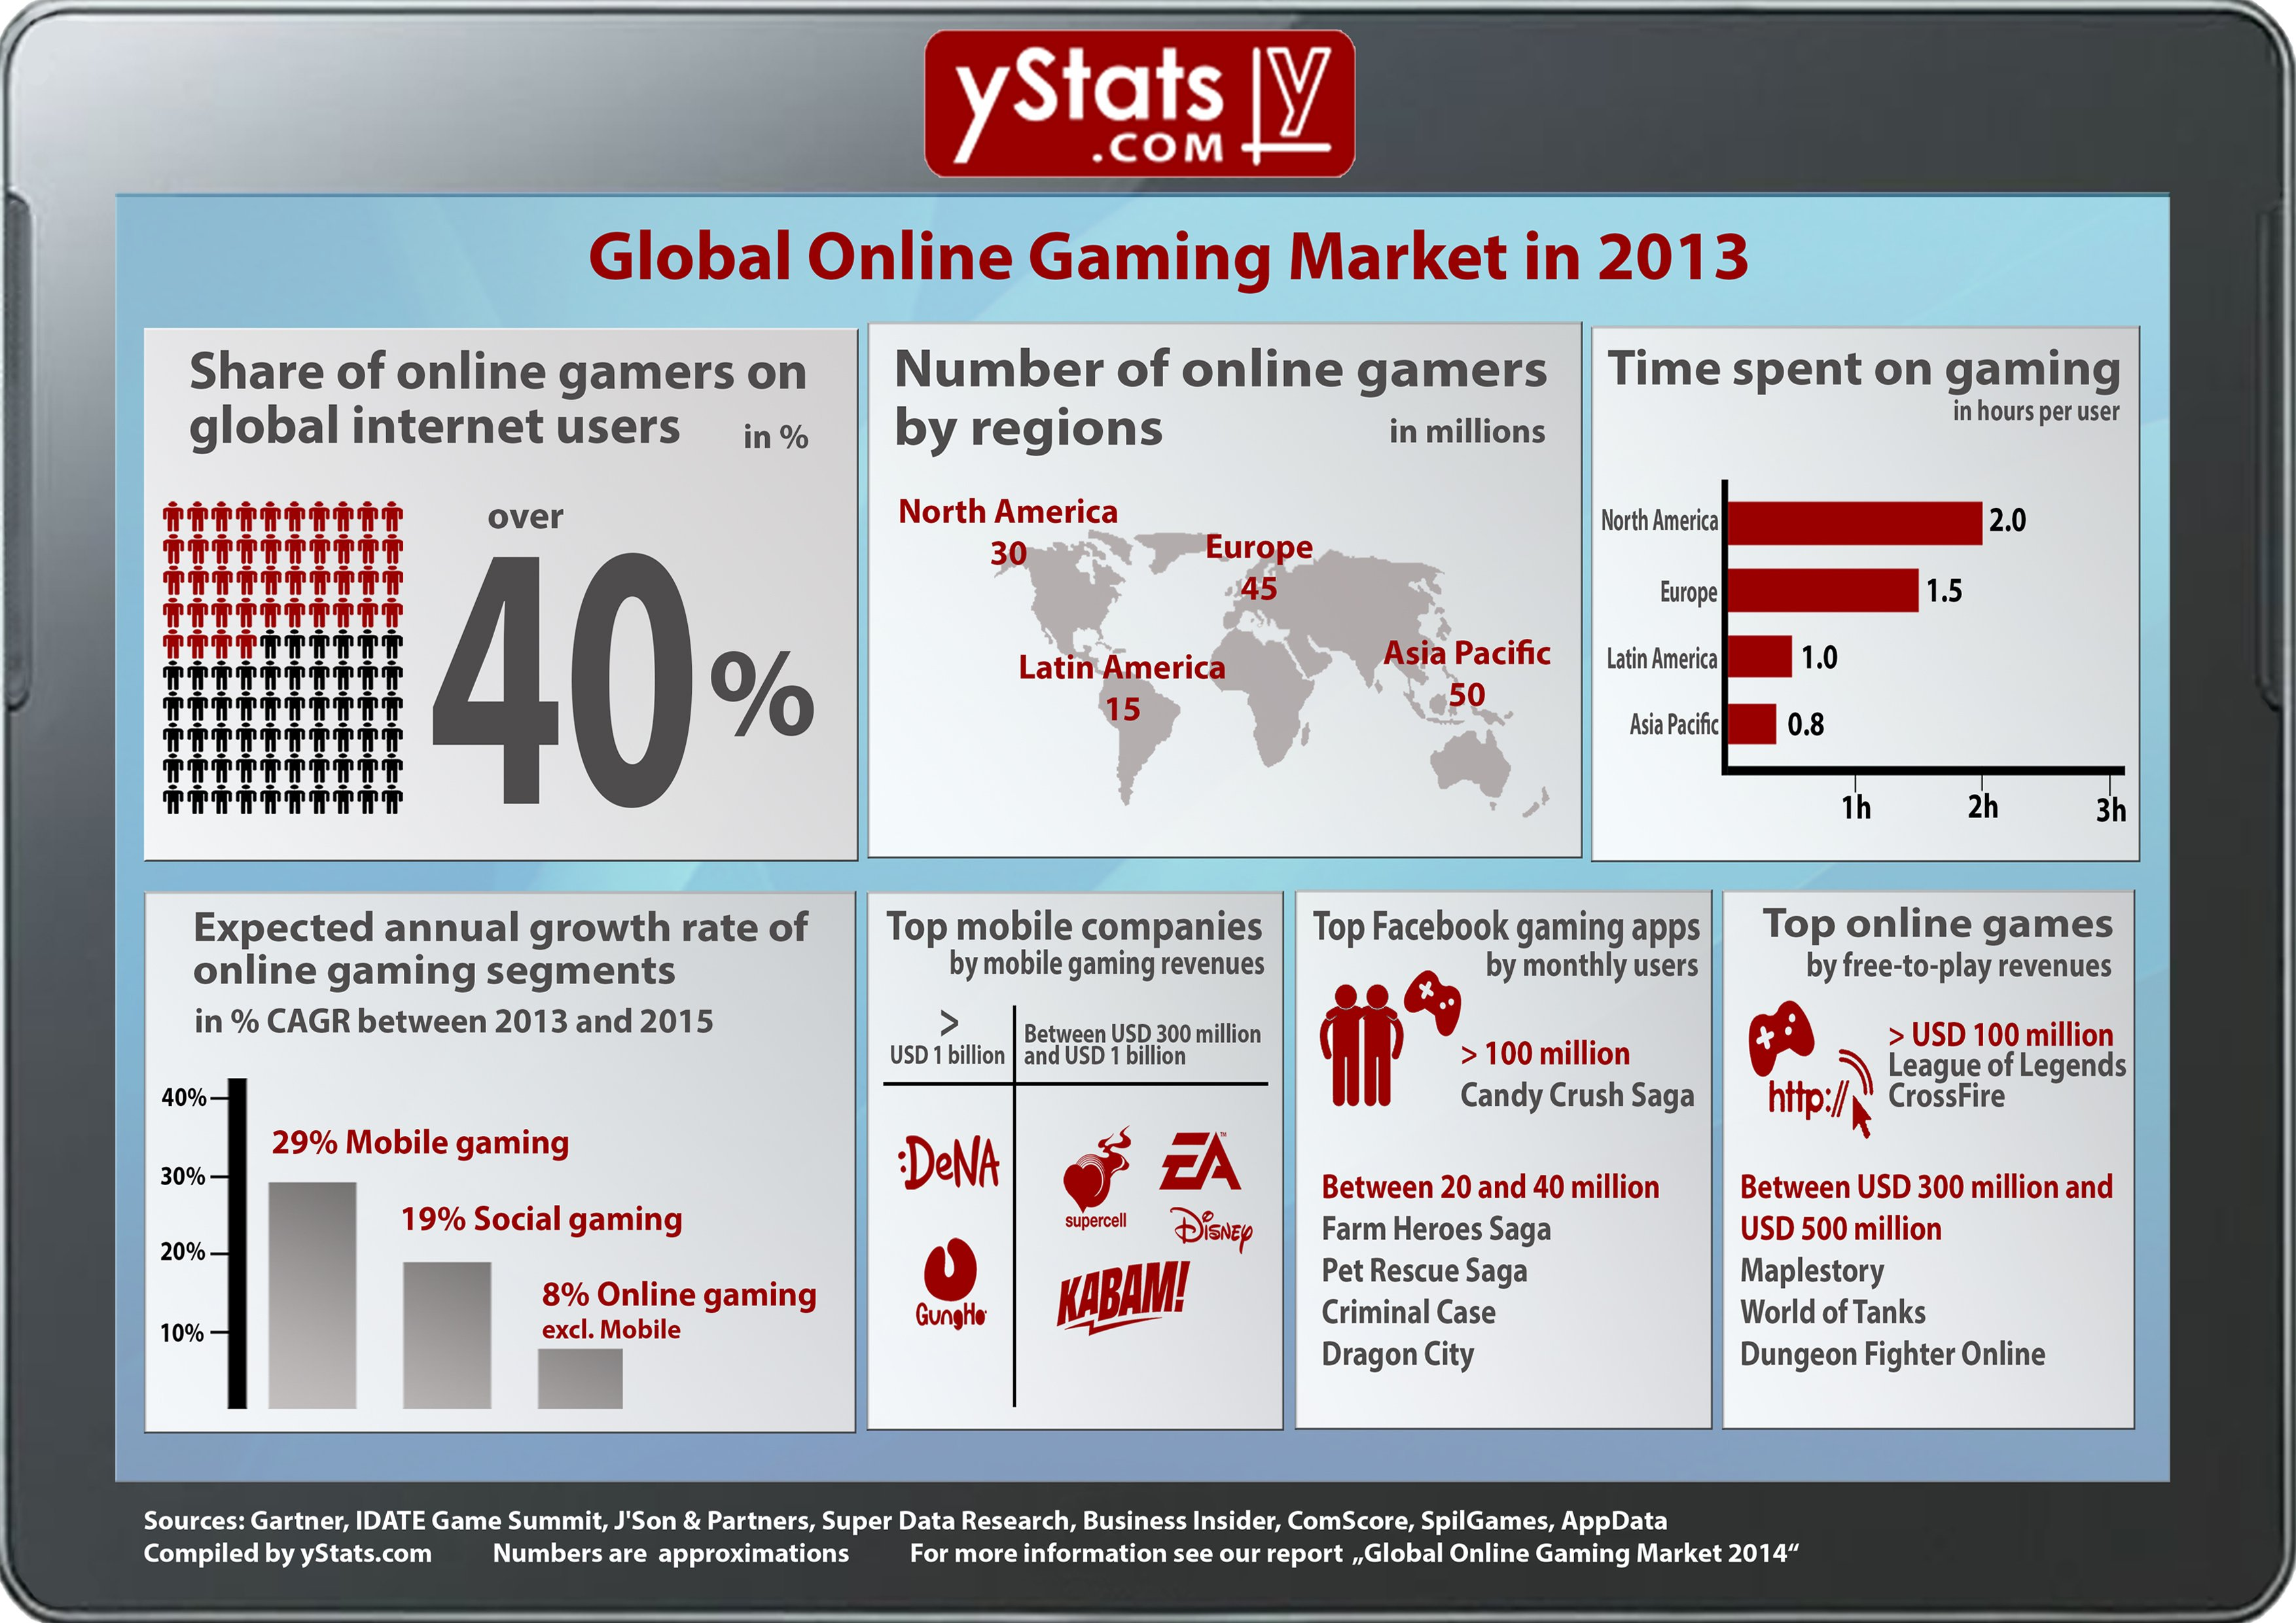 Infographic_Global_Online_Gaming_Market_in_2013_by_yStats.com, featured on www.blog.marketresearch.com